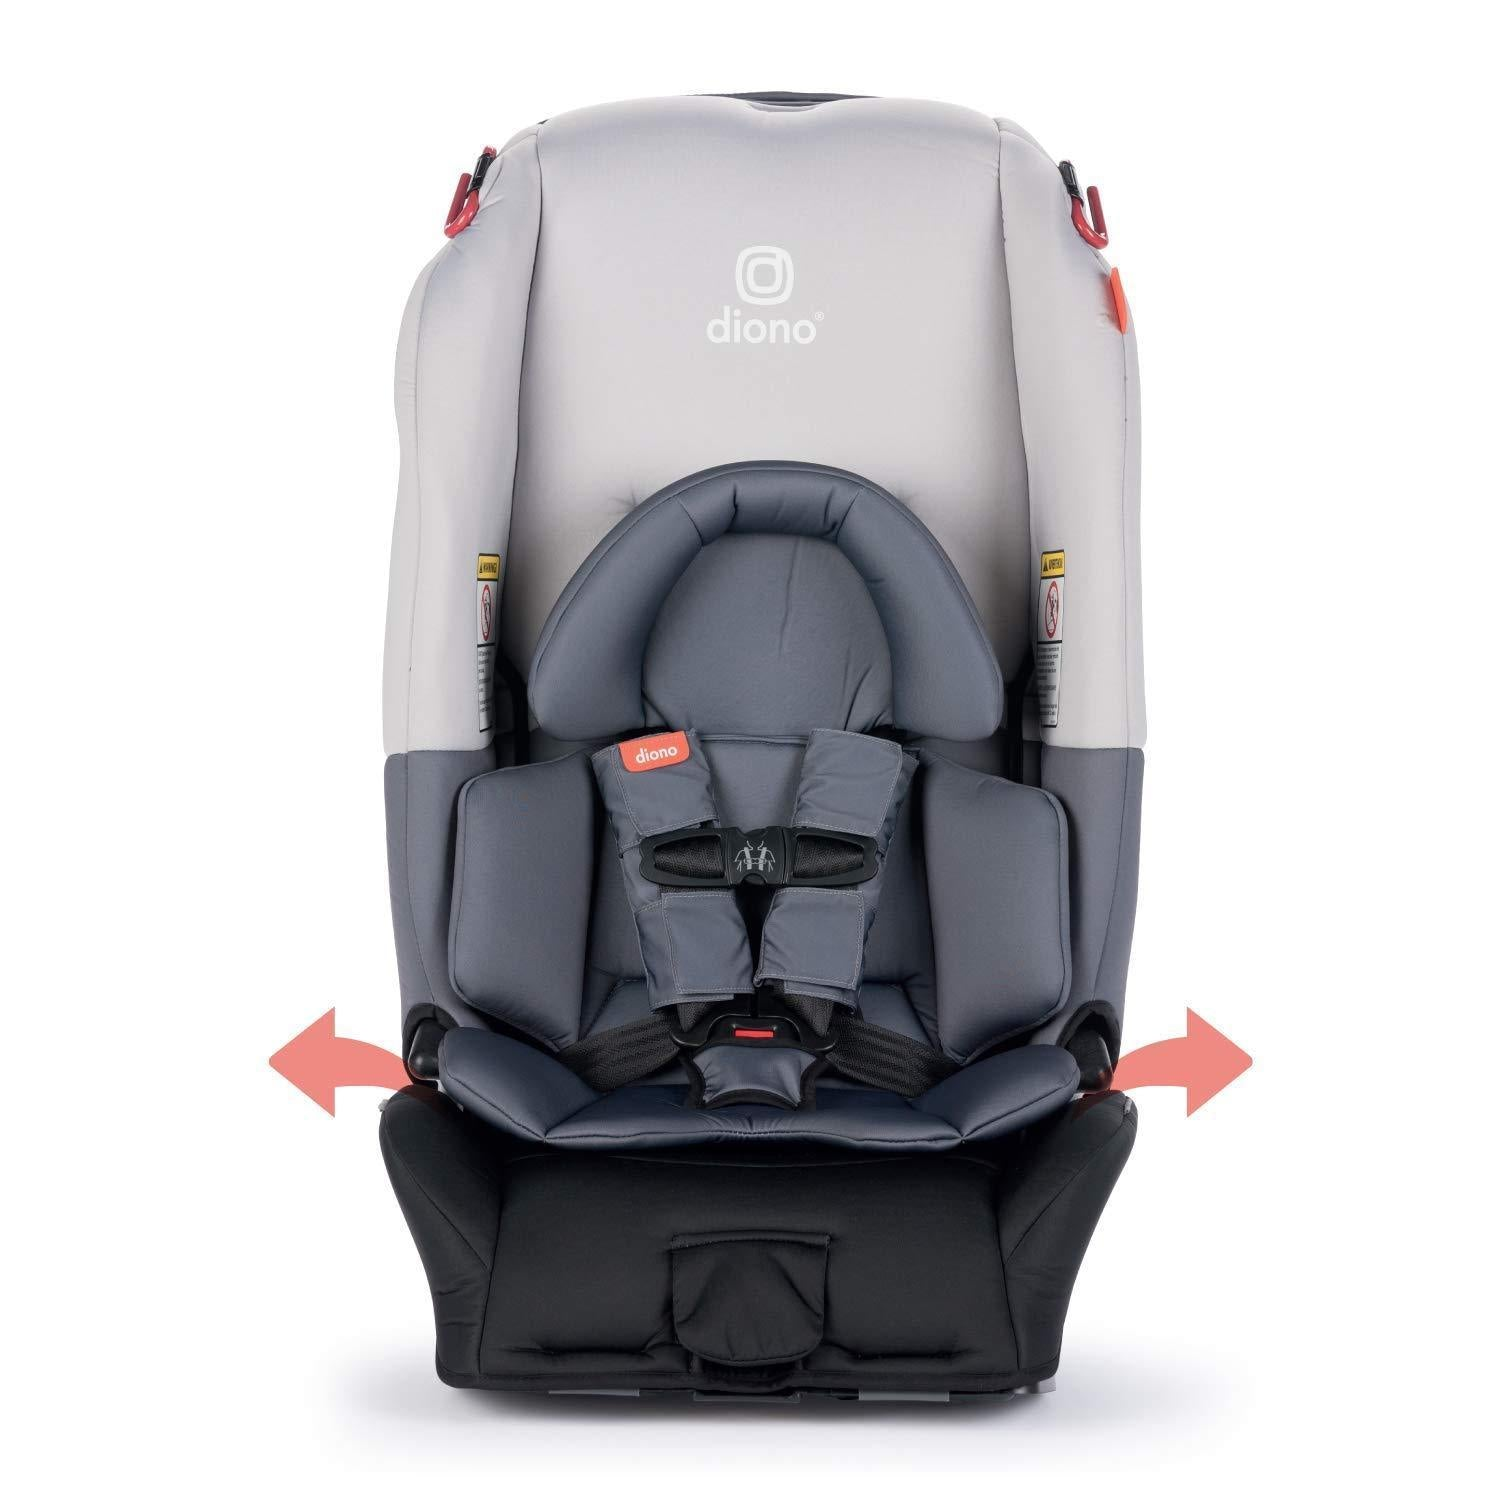 Diono Radian 3 RX All-in-One Convertible Car Seat - Grey Light